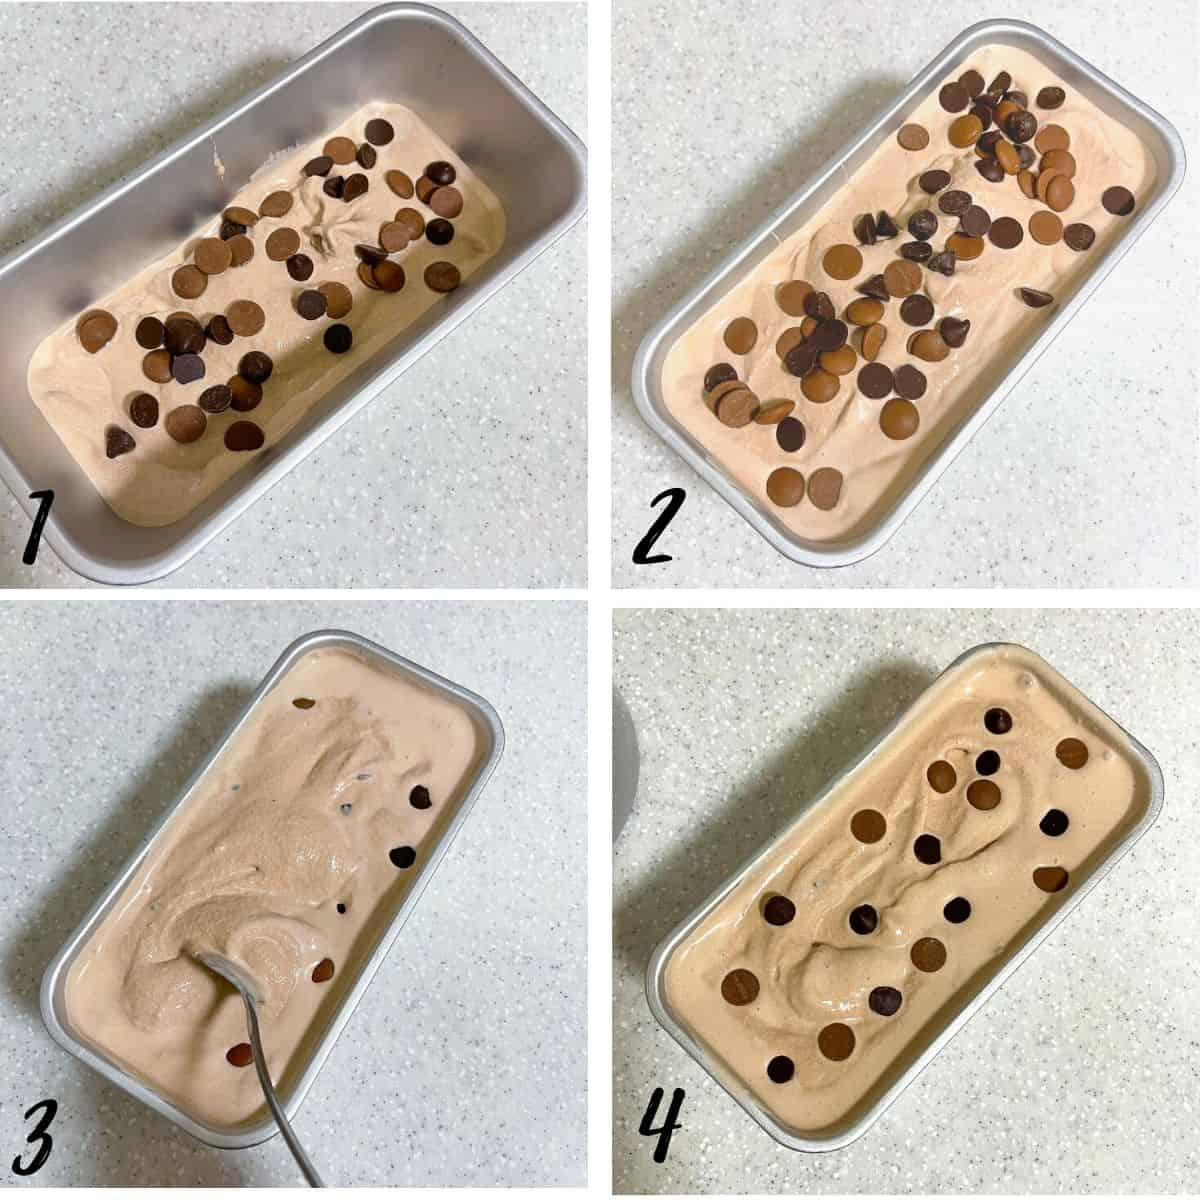 A poster of 4 images showing how to assemble chocolate chip ice cream